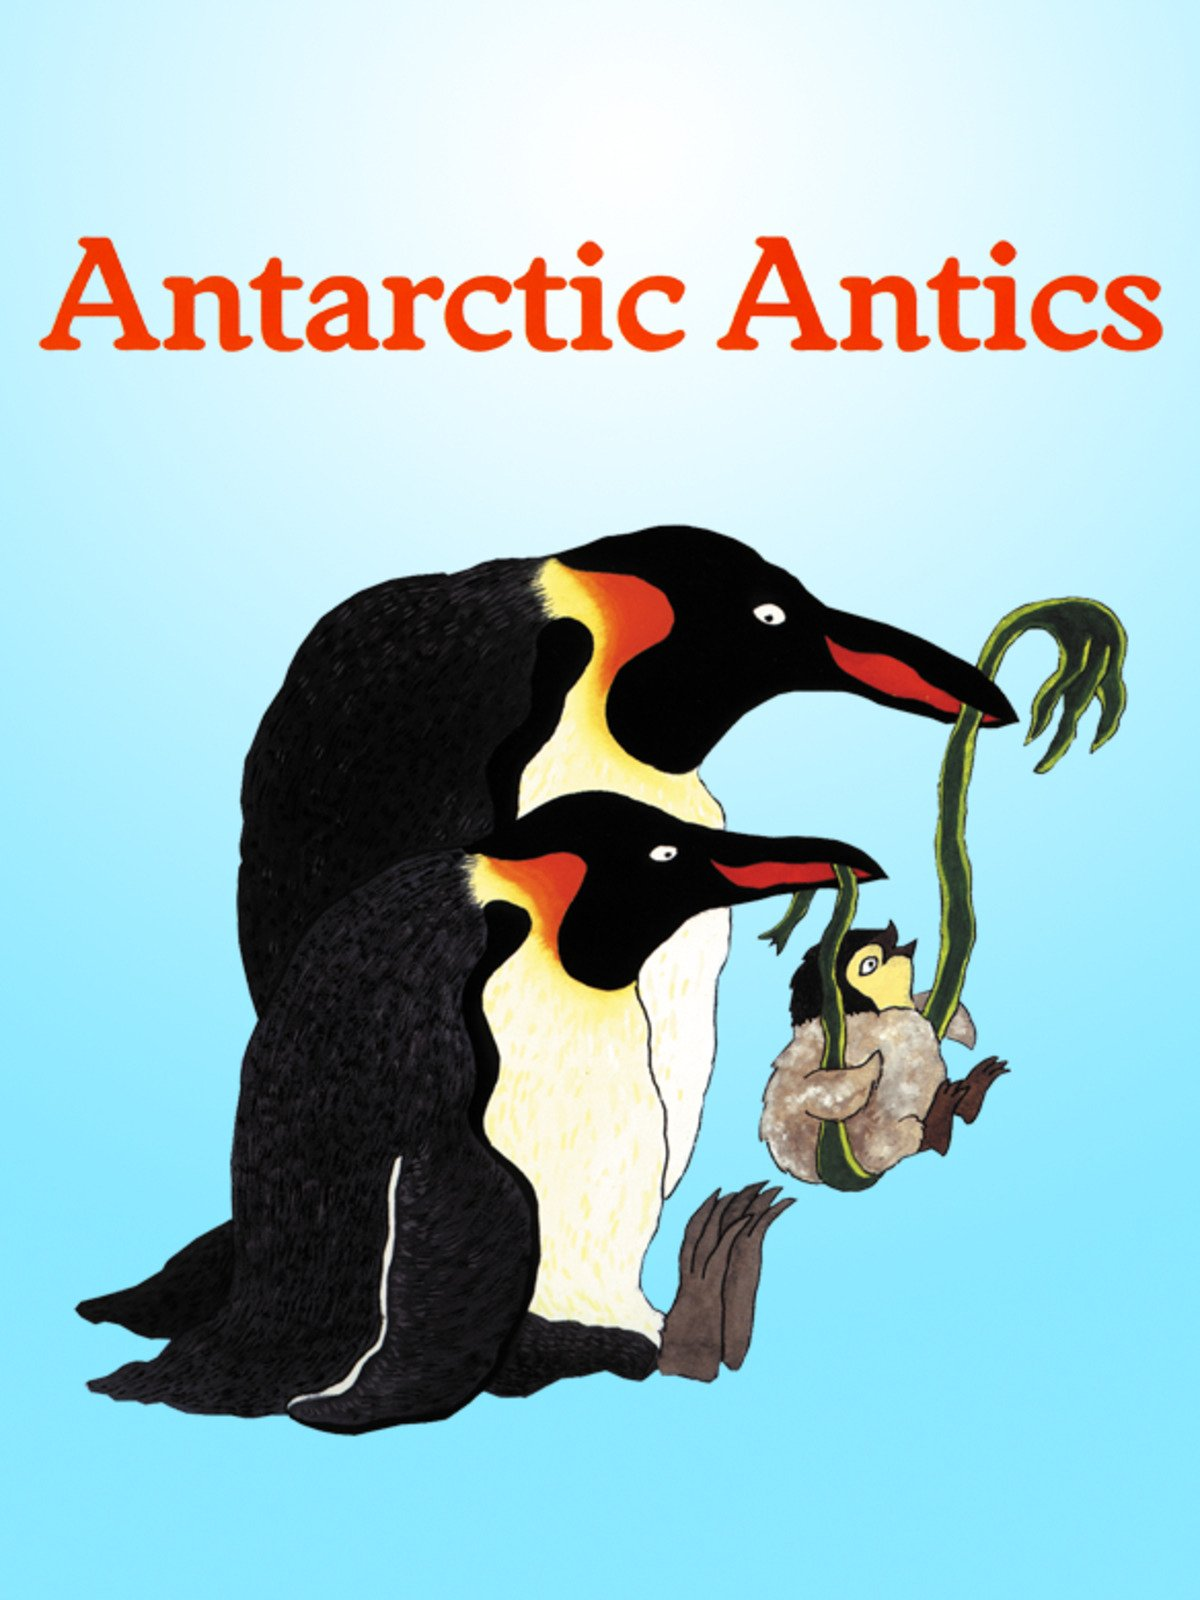 Antarctic Antics